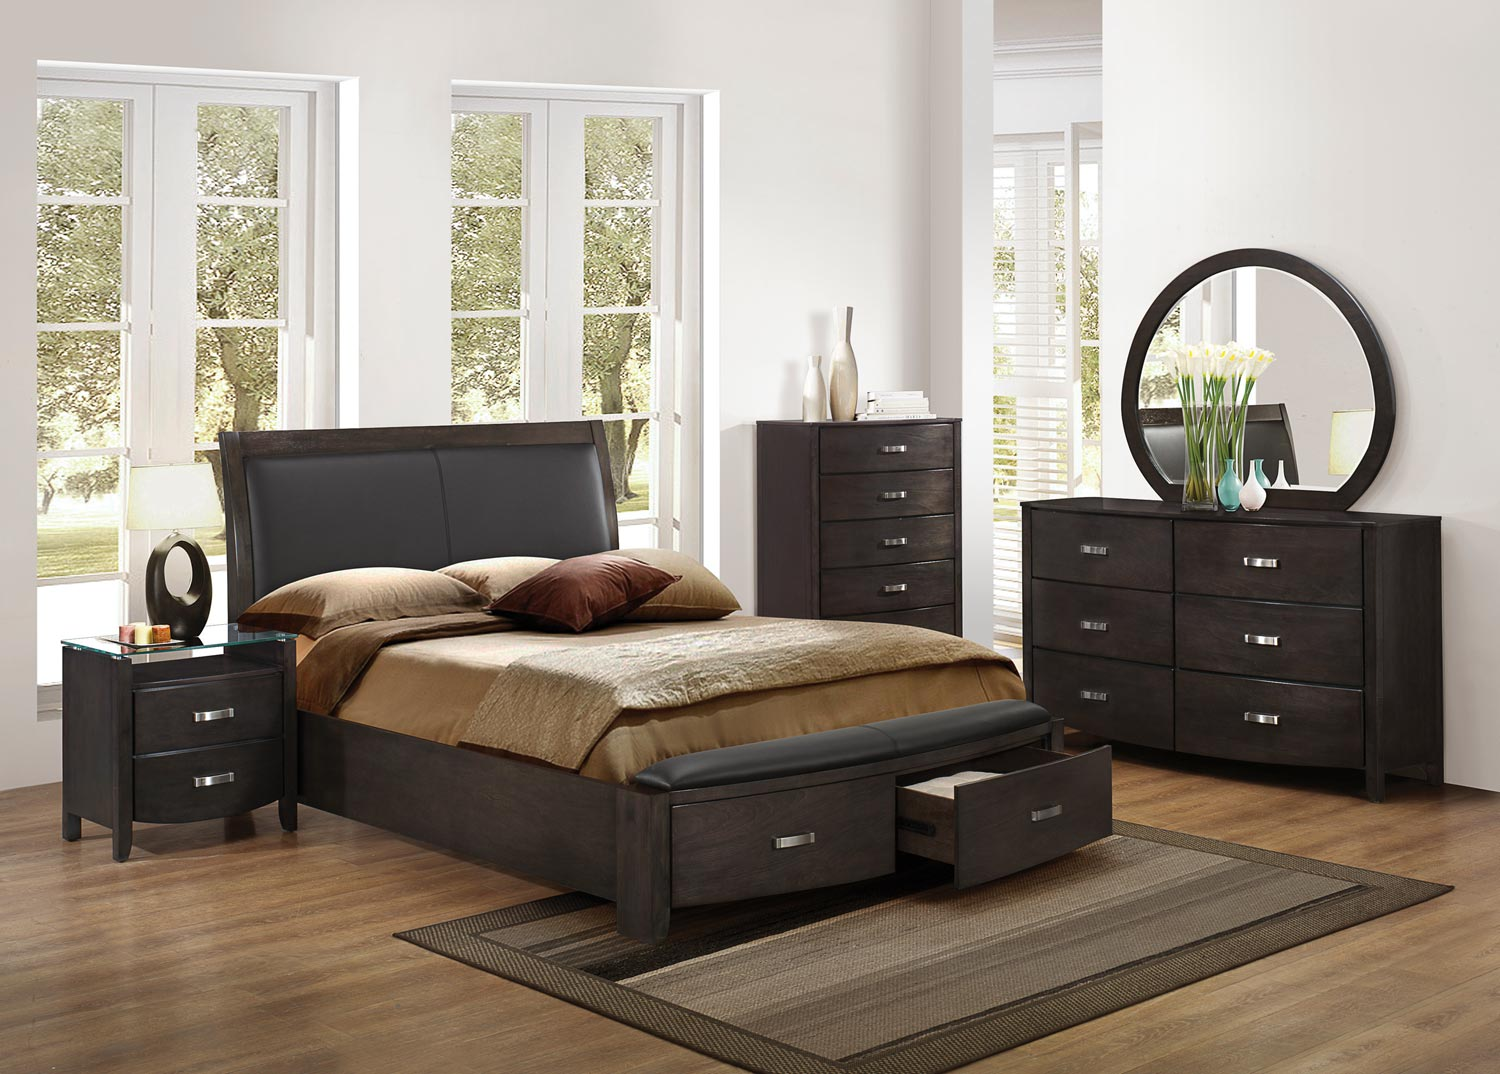 Homelegance Lyric Upholstered Sleigh Platform Storage Bedroom Set - Brownish Grey